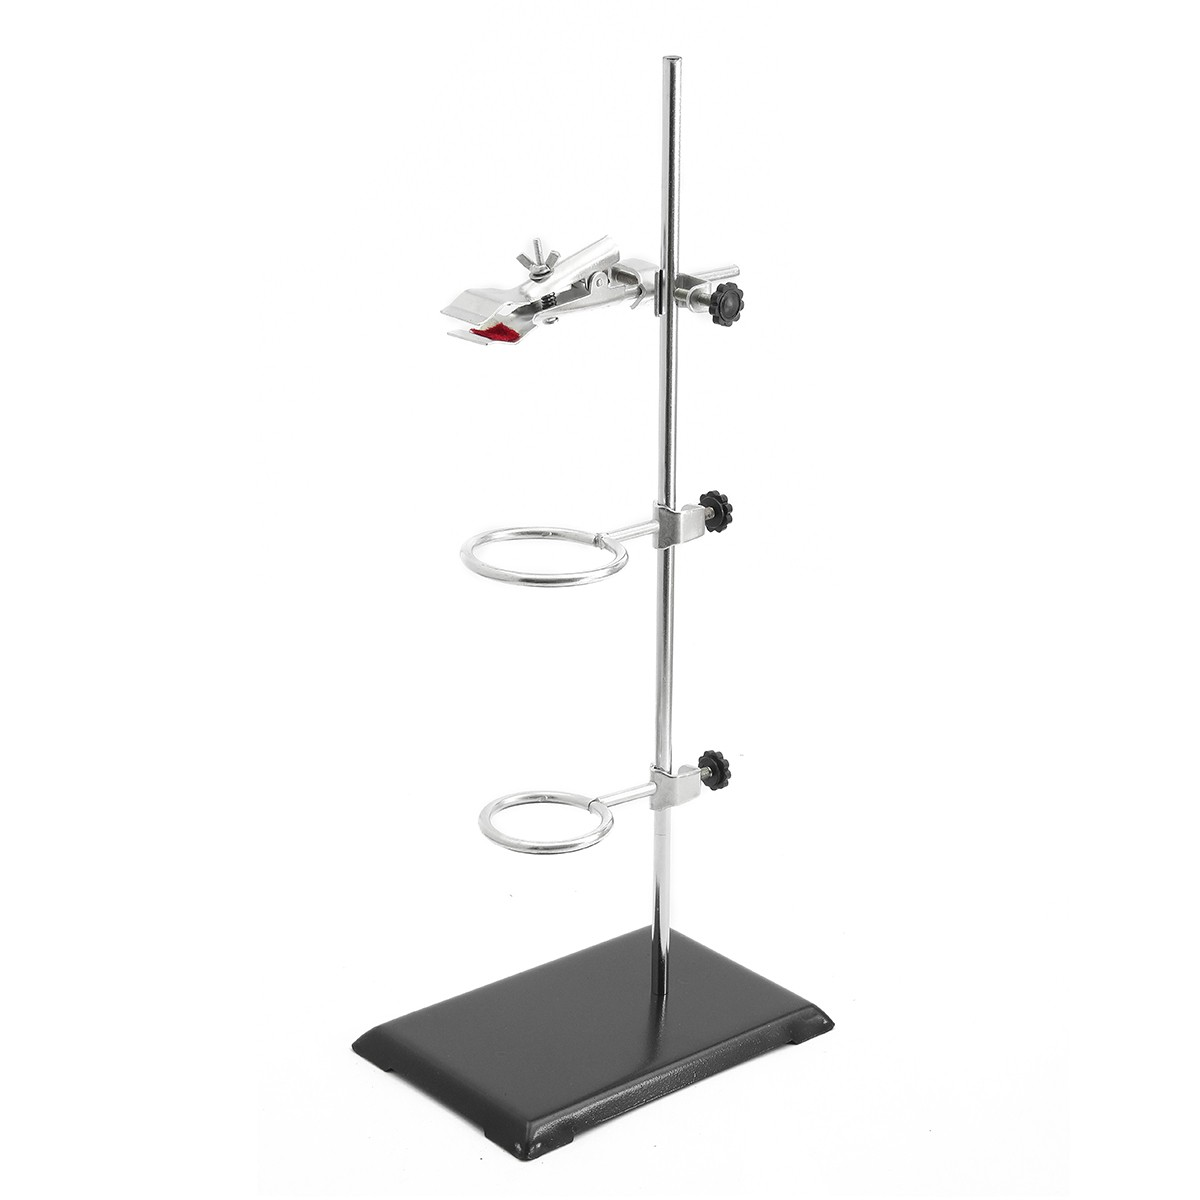 Kicute New 1 Set Laboratory Stands Retort Stands Support Clamp Flask Lab Stand Set Holder Laboratory School Education Supply 1 set 50cm high retort stand iron stand with clamp clip laboratory ring stand educational equipment school education supplies